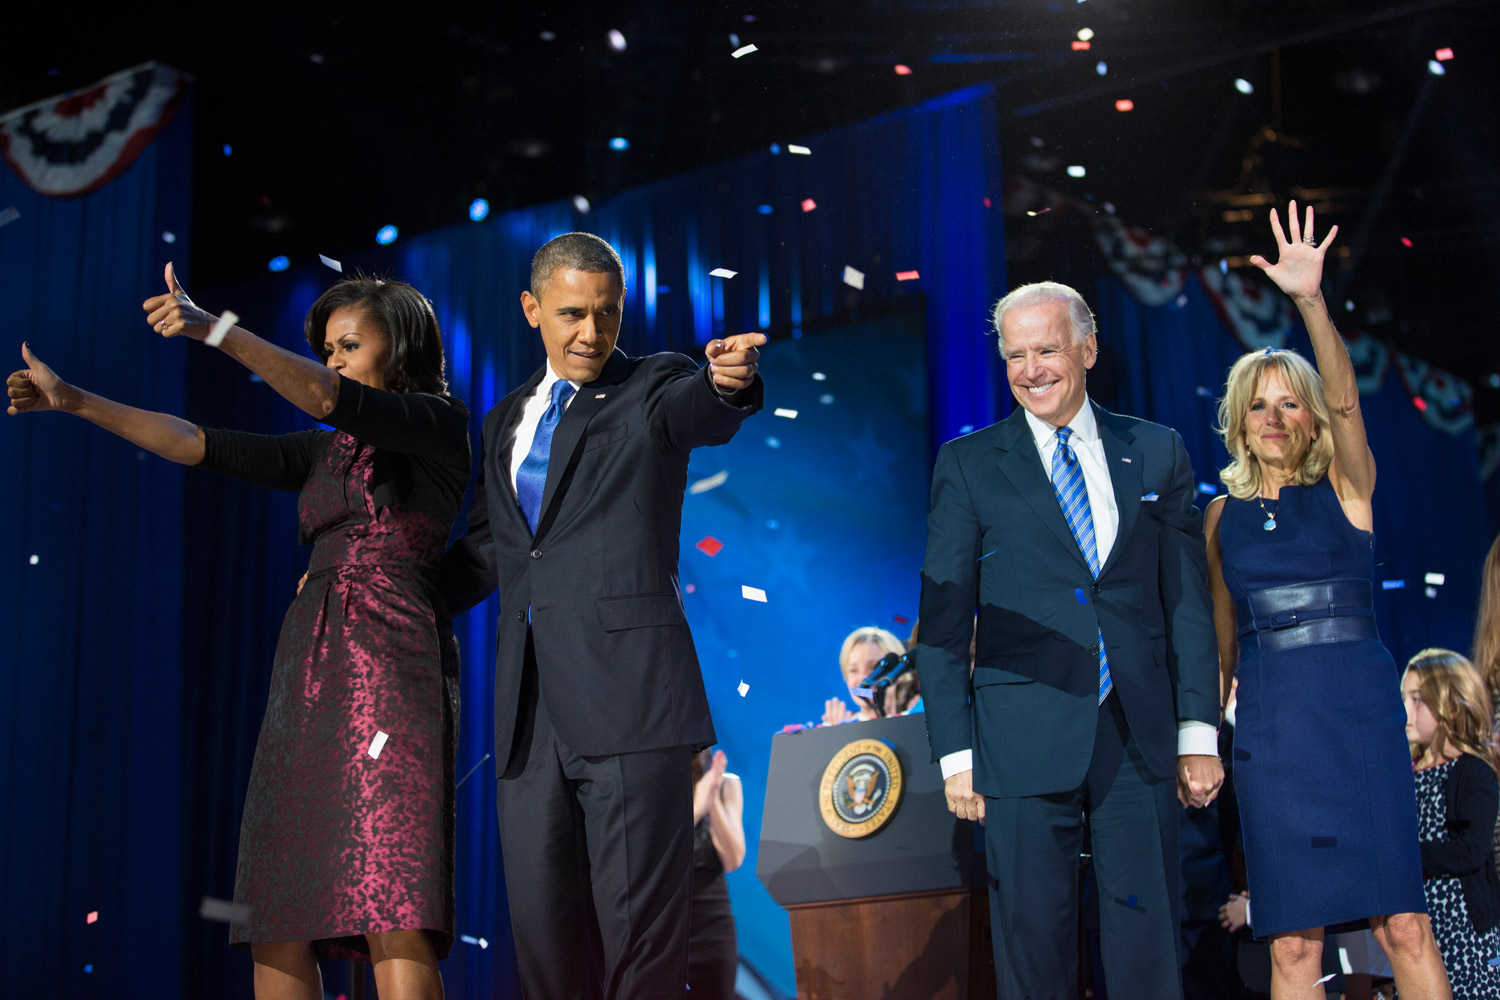 Nov. 6, 2012. First Lady Michelle Obama, President Barack Obama, Vice President Joe Biden and Jill Biden at the President's election night victory party in Chicago.